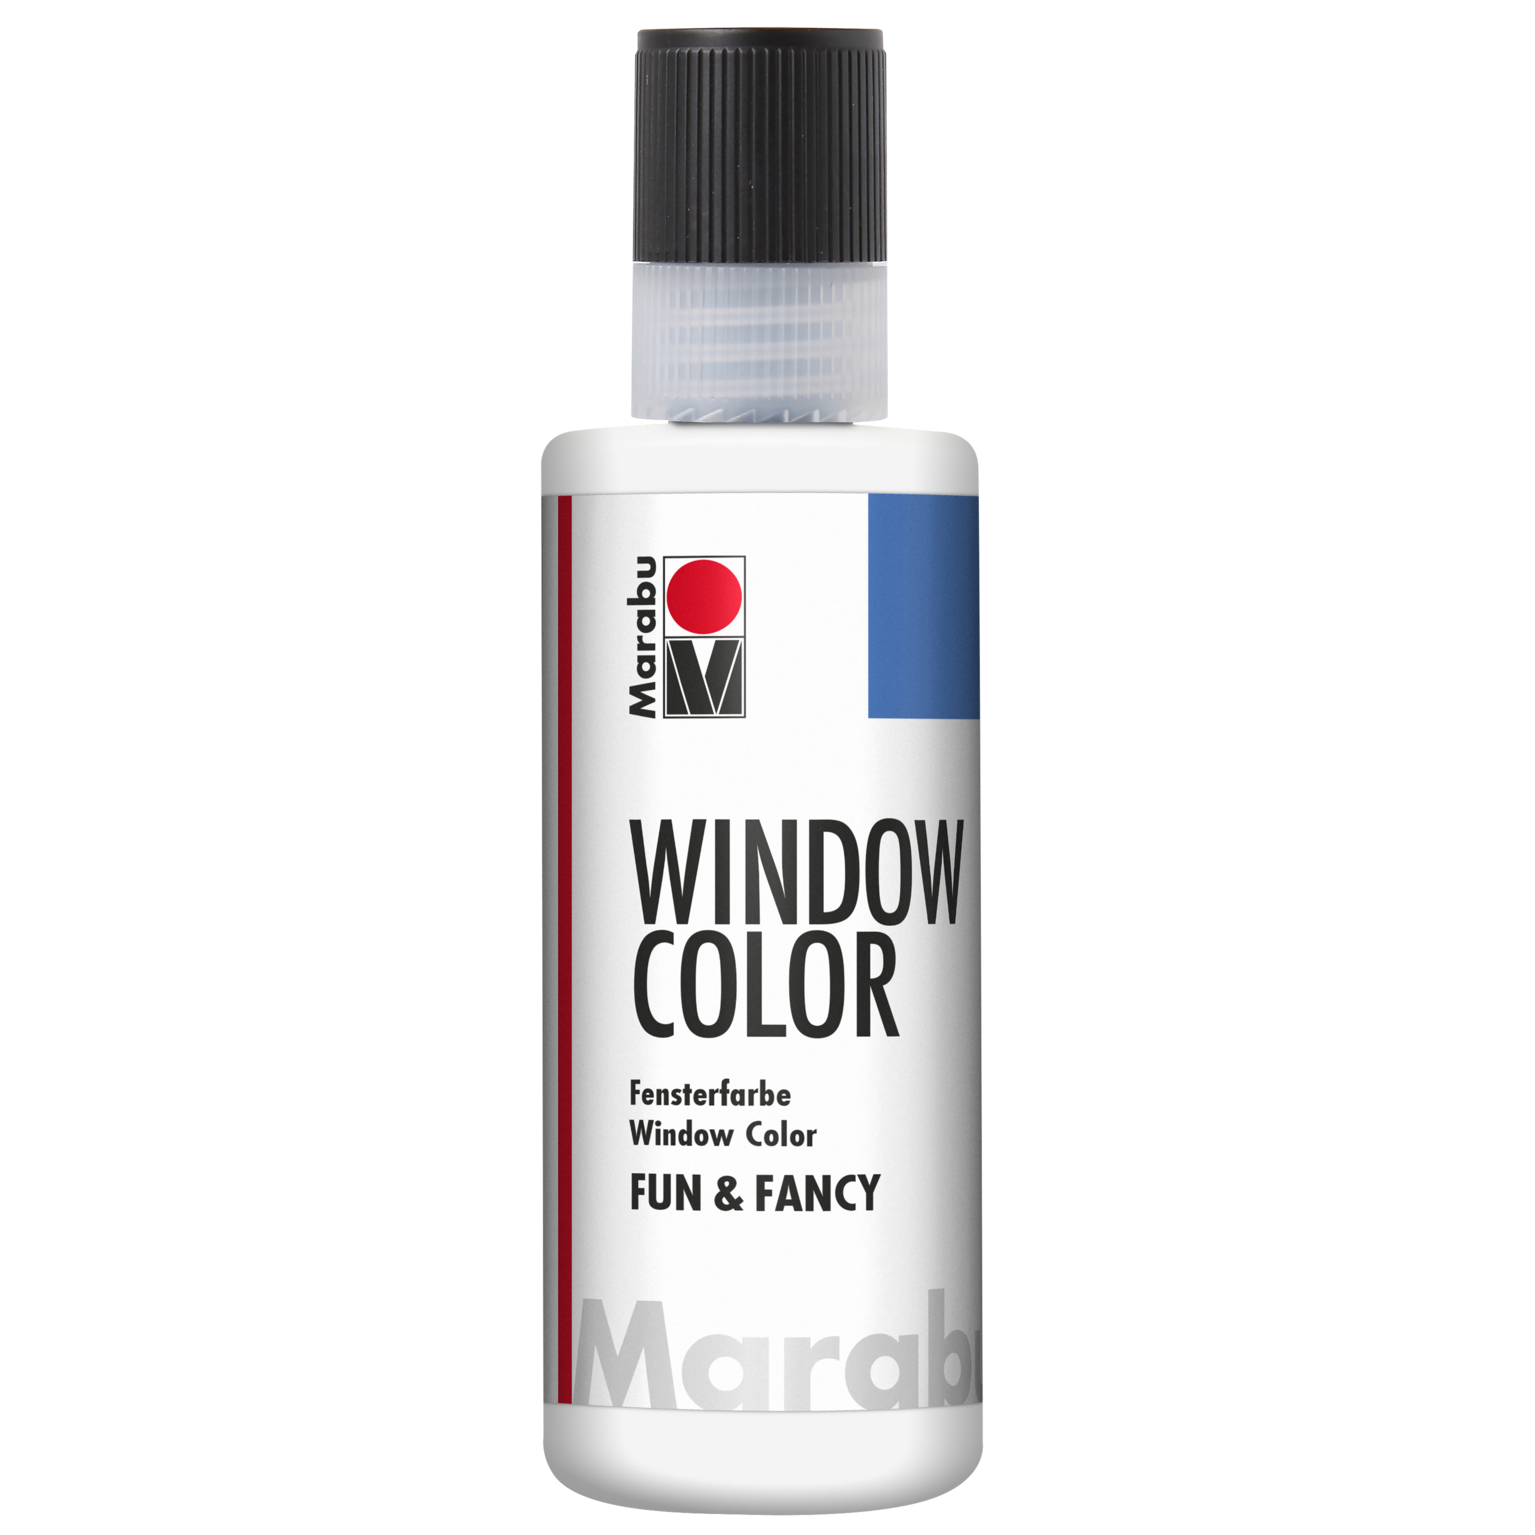 Marabu Window Color fun & fancy, Konturen Weiß 870, 80 ml